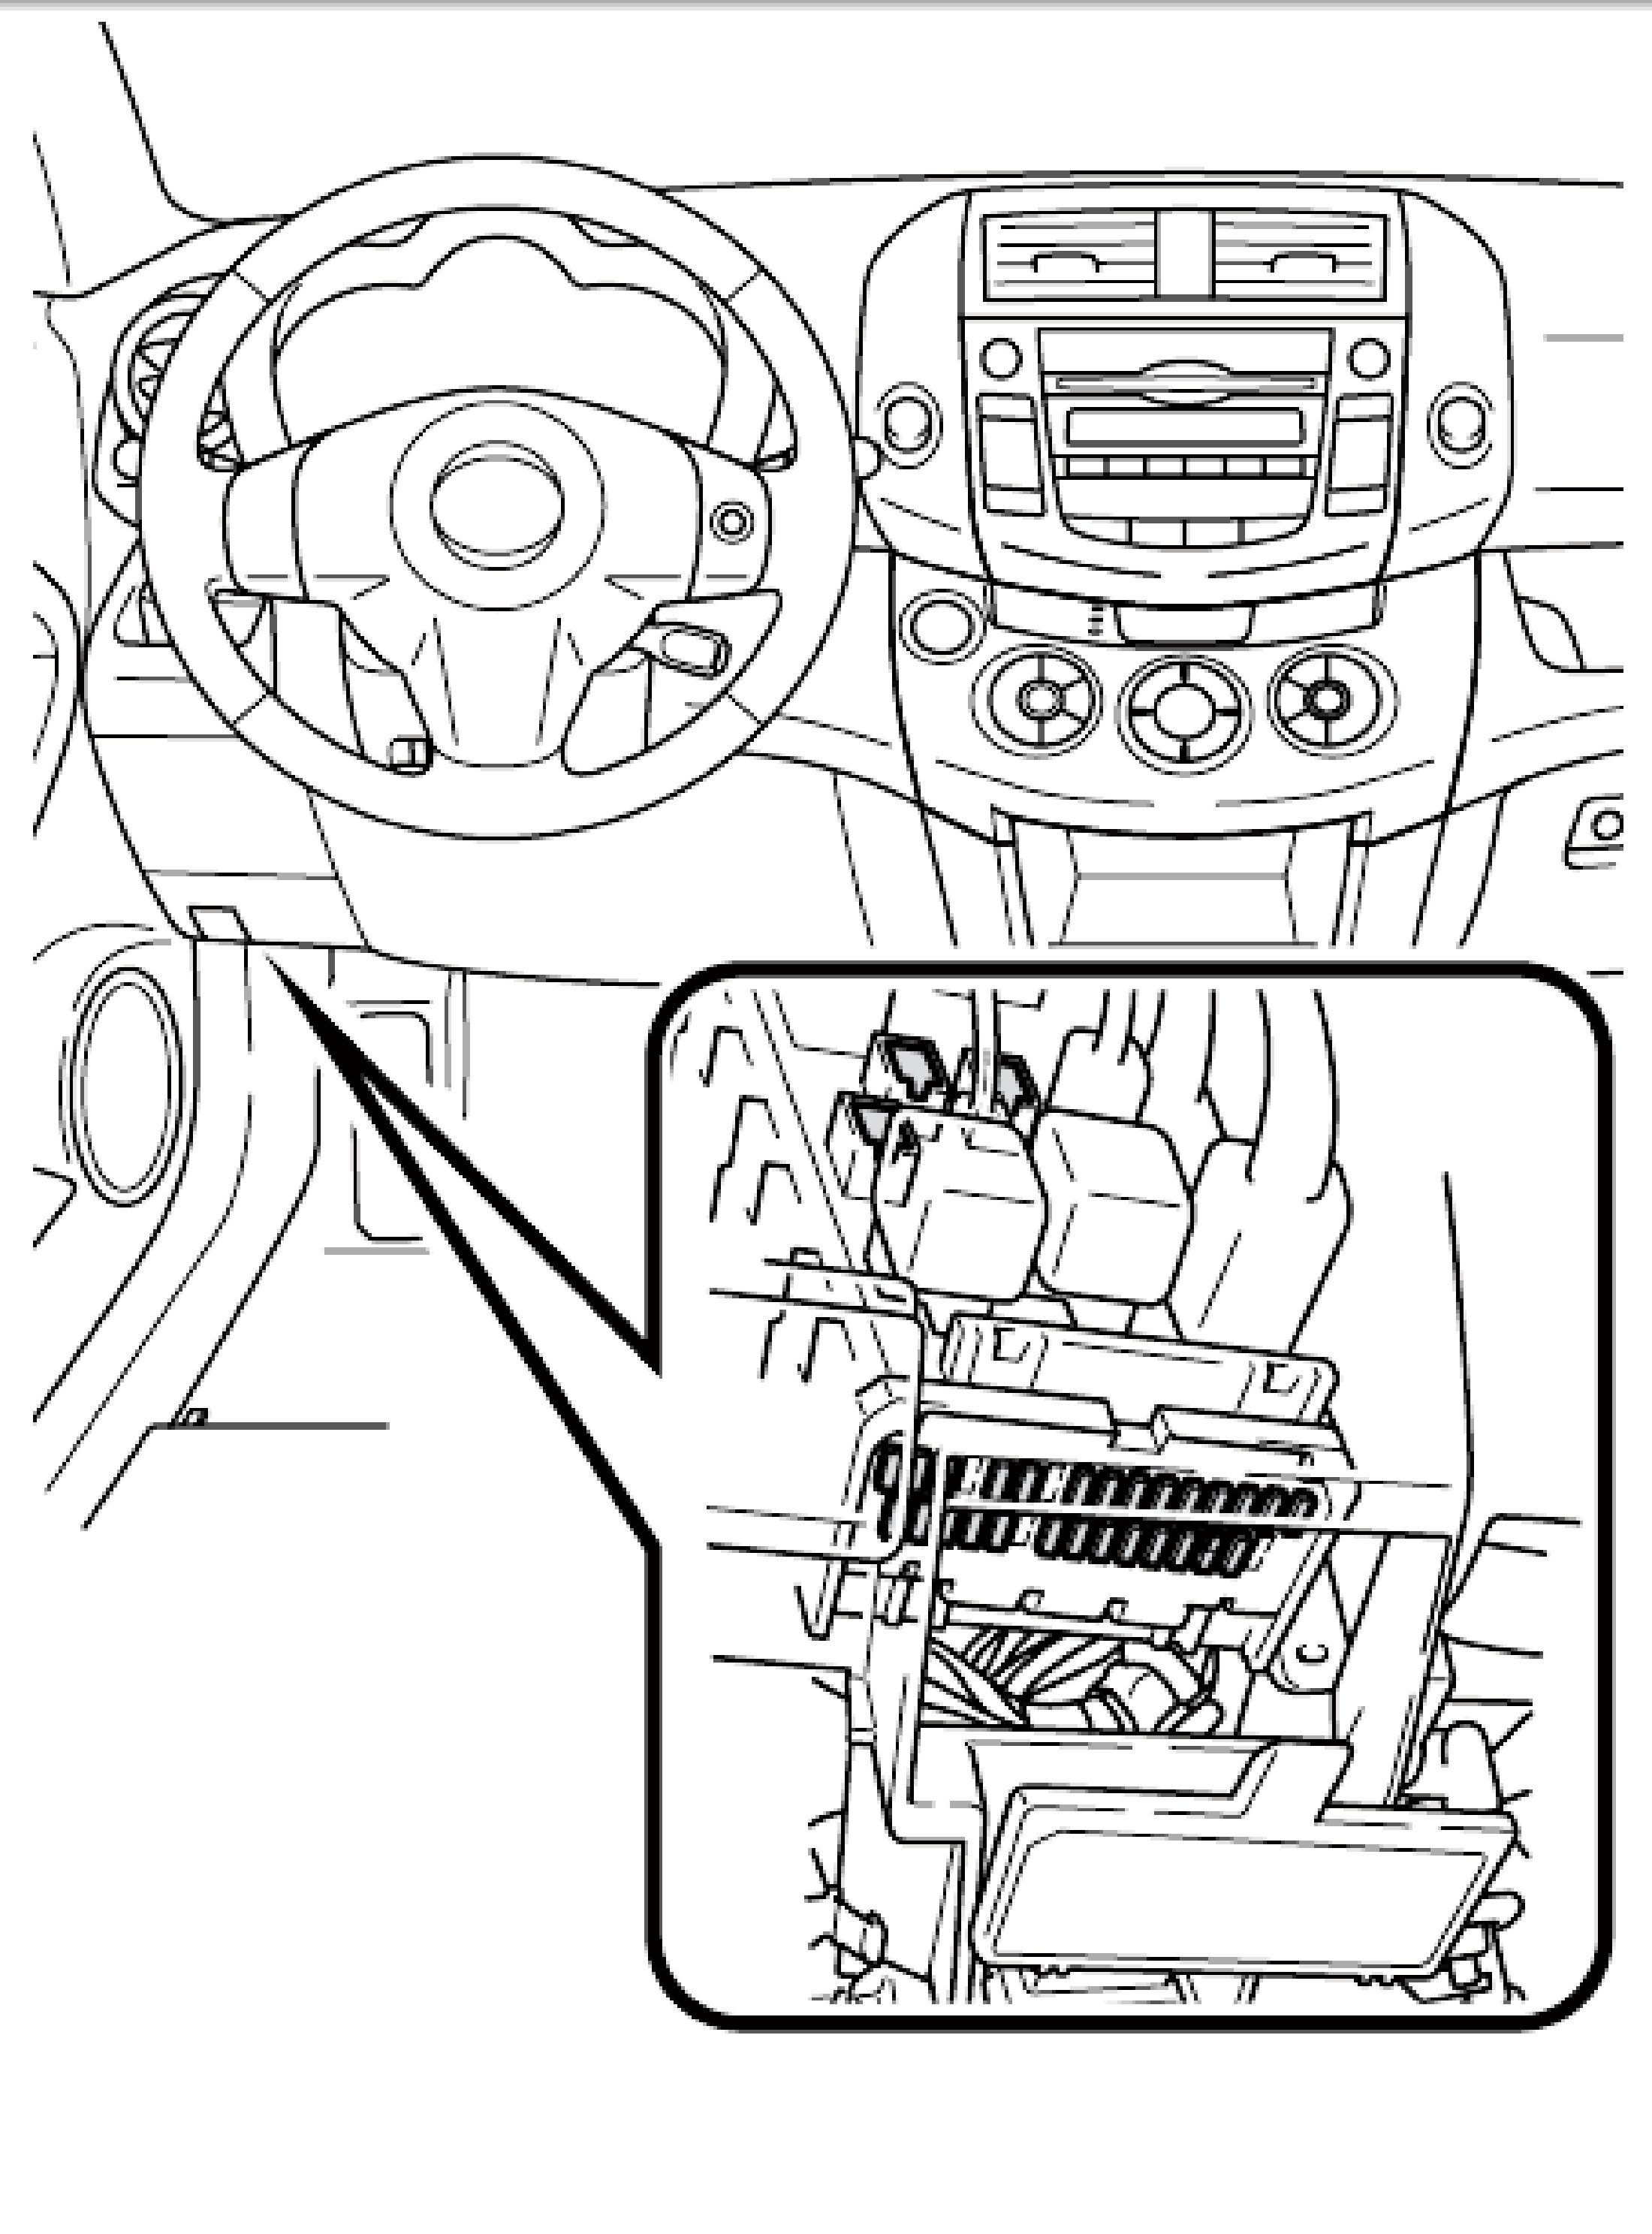 fuse box in 2006 toyota corolla wiring diagram 2009 Ford F-150 Fuse Box Diagram toyota corolla 2005 fuse box radio wiring diagram1989 toyota camry fuse diagram wiring diagram databaseresistant location